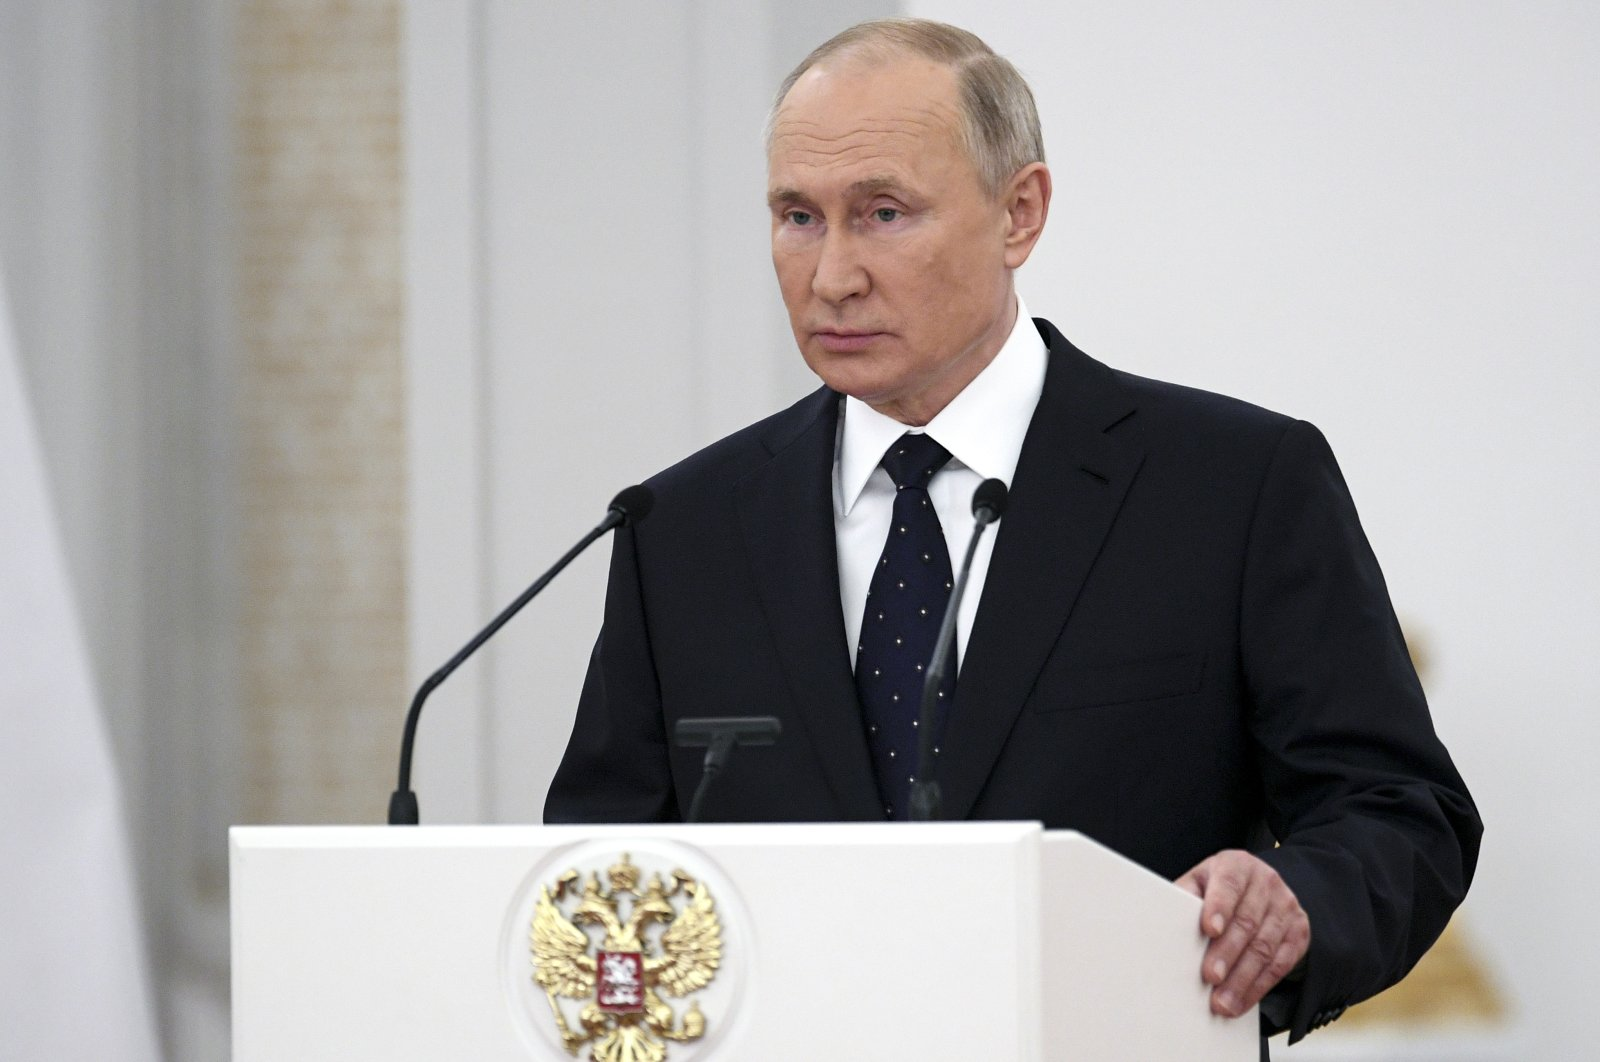 Russian President Vladimir Putin delivers a speech to members of the State Duma, the Lower House of the Russian Parliament at the Great Kremlin Palace, Moscow, Russia, June 21, 2021. (AP Photo)